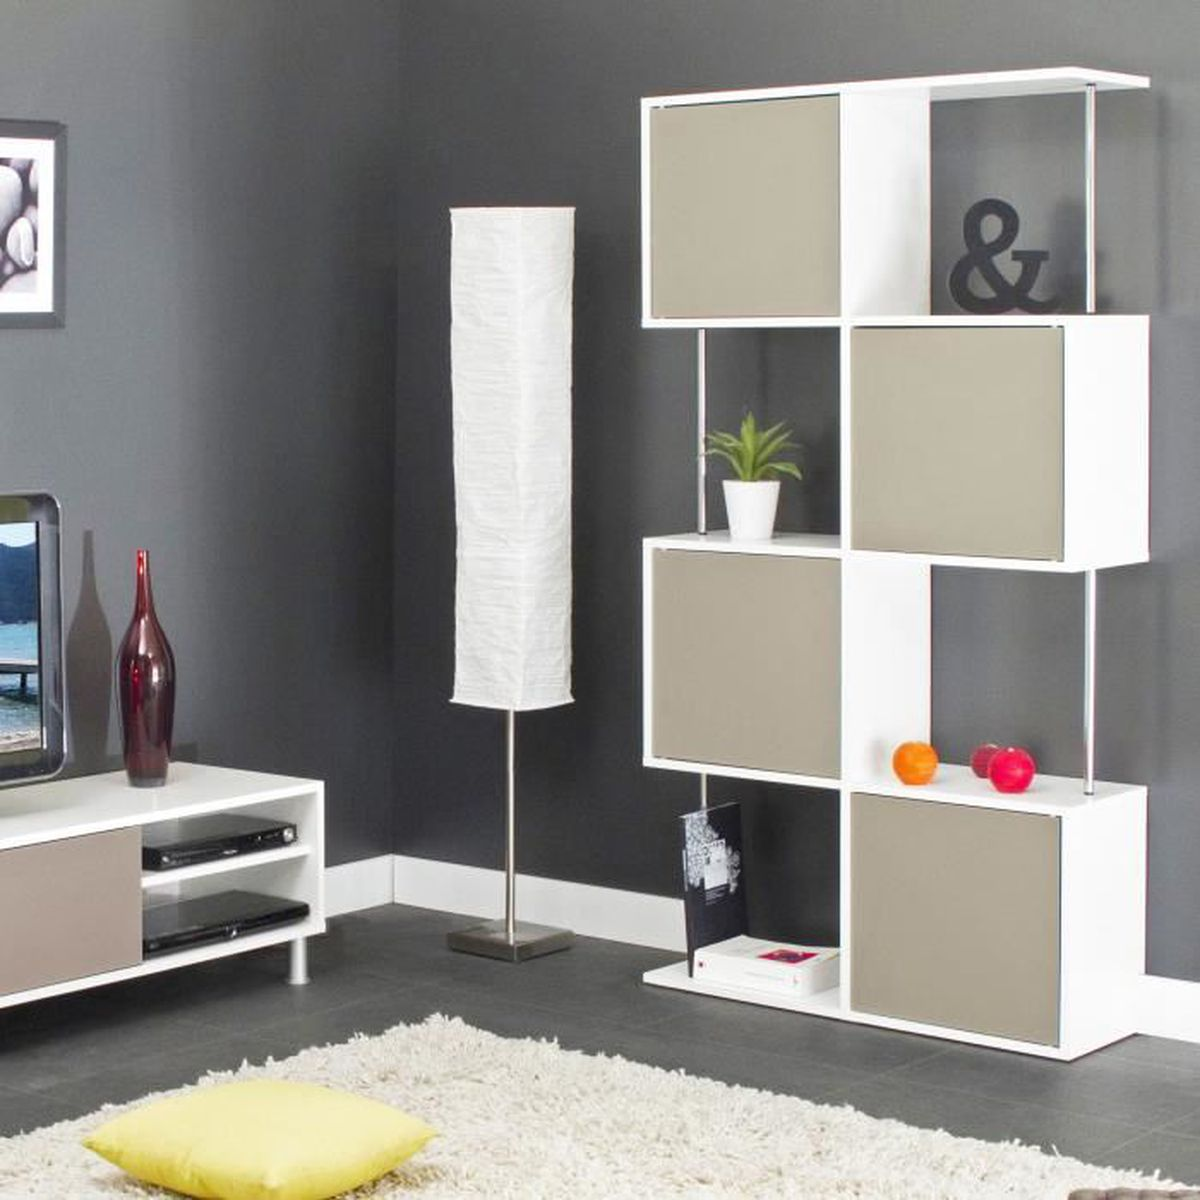 etag re semi ferm e blanc taupe achat vente etag re murale etag re semi ferm e blanc t. Black Bedroom Furniture Sets. Home Design Ideas